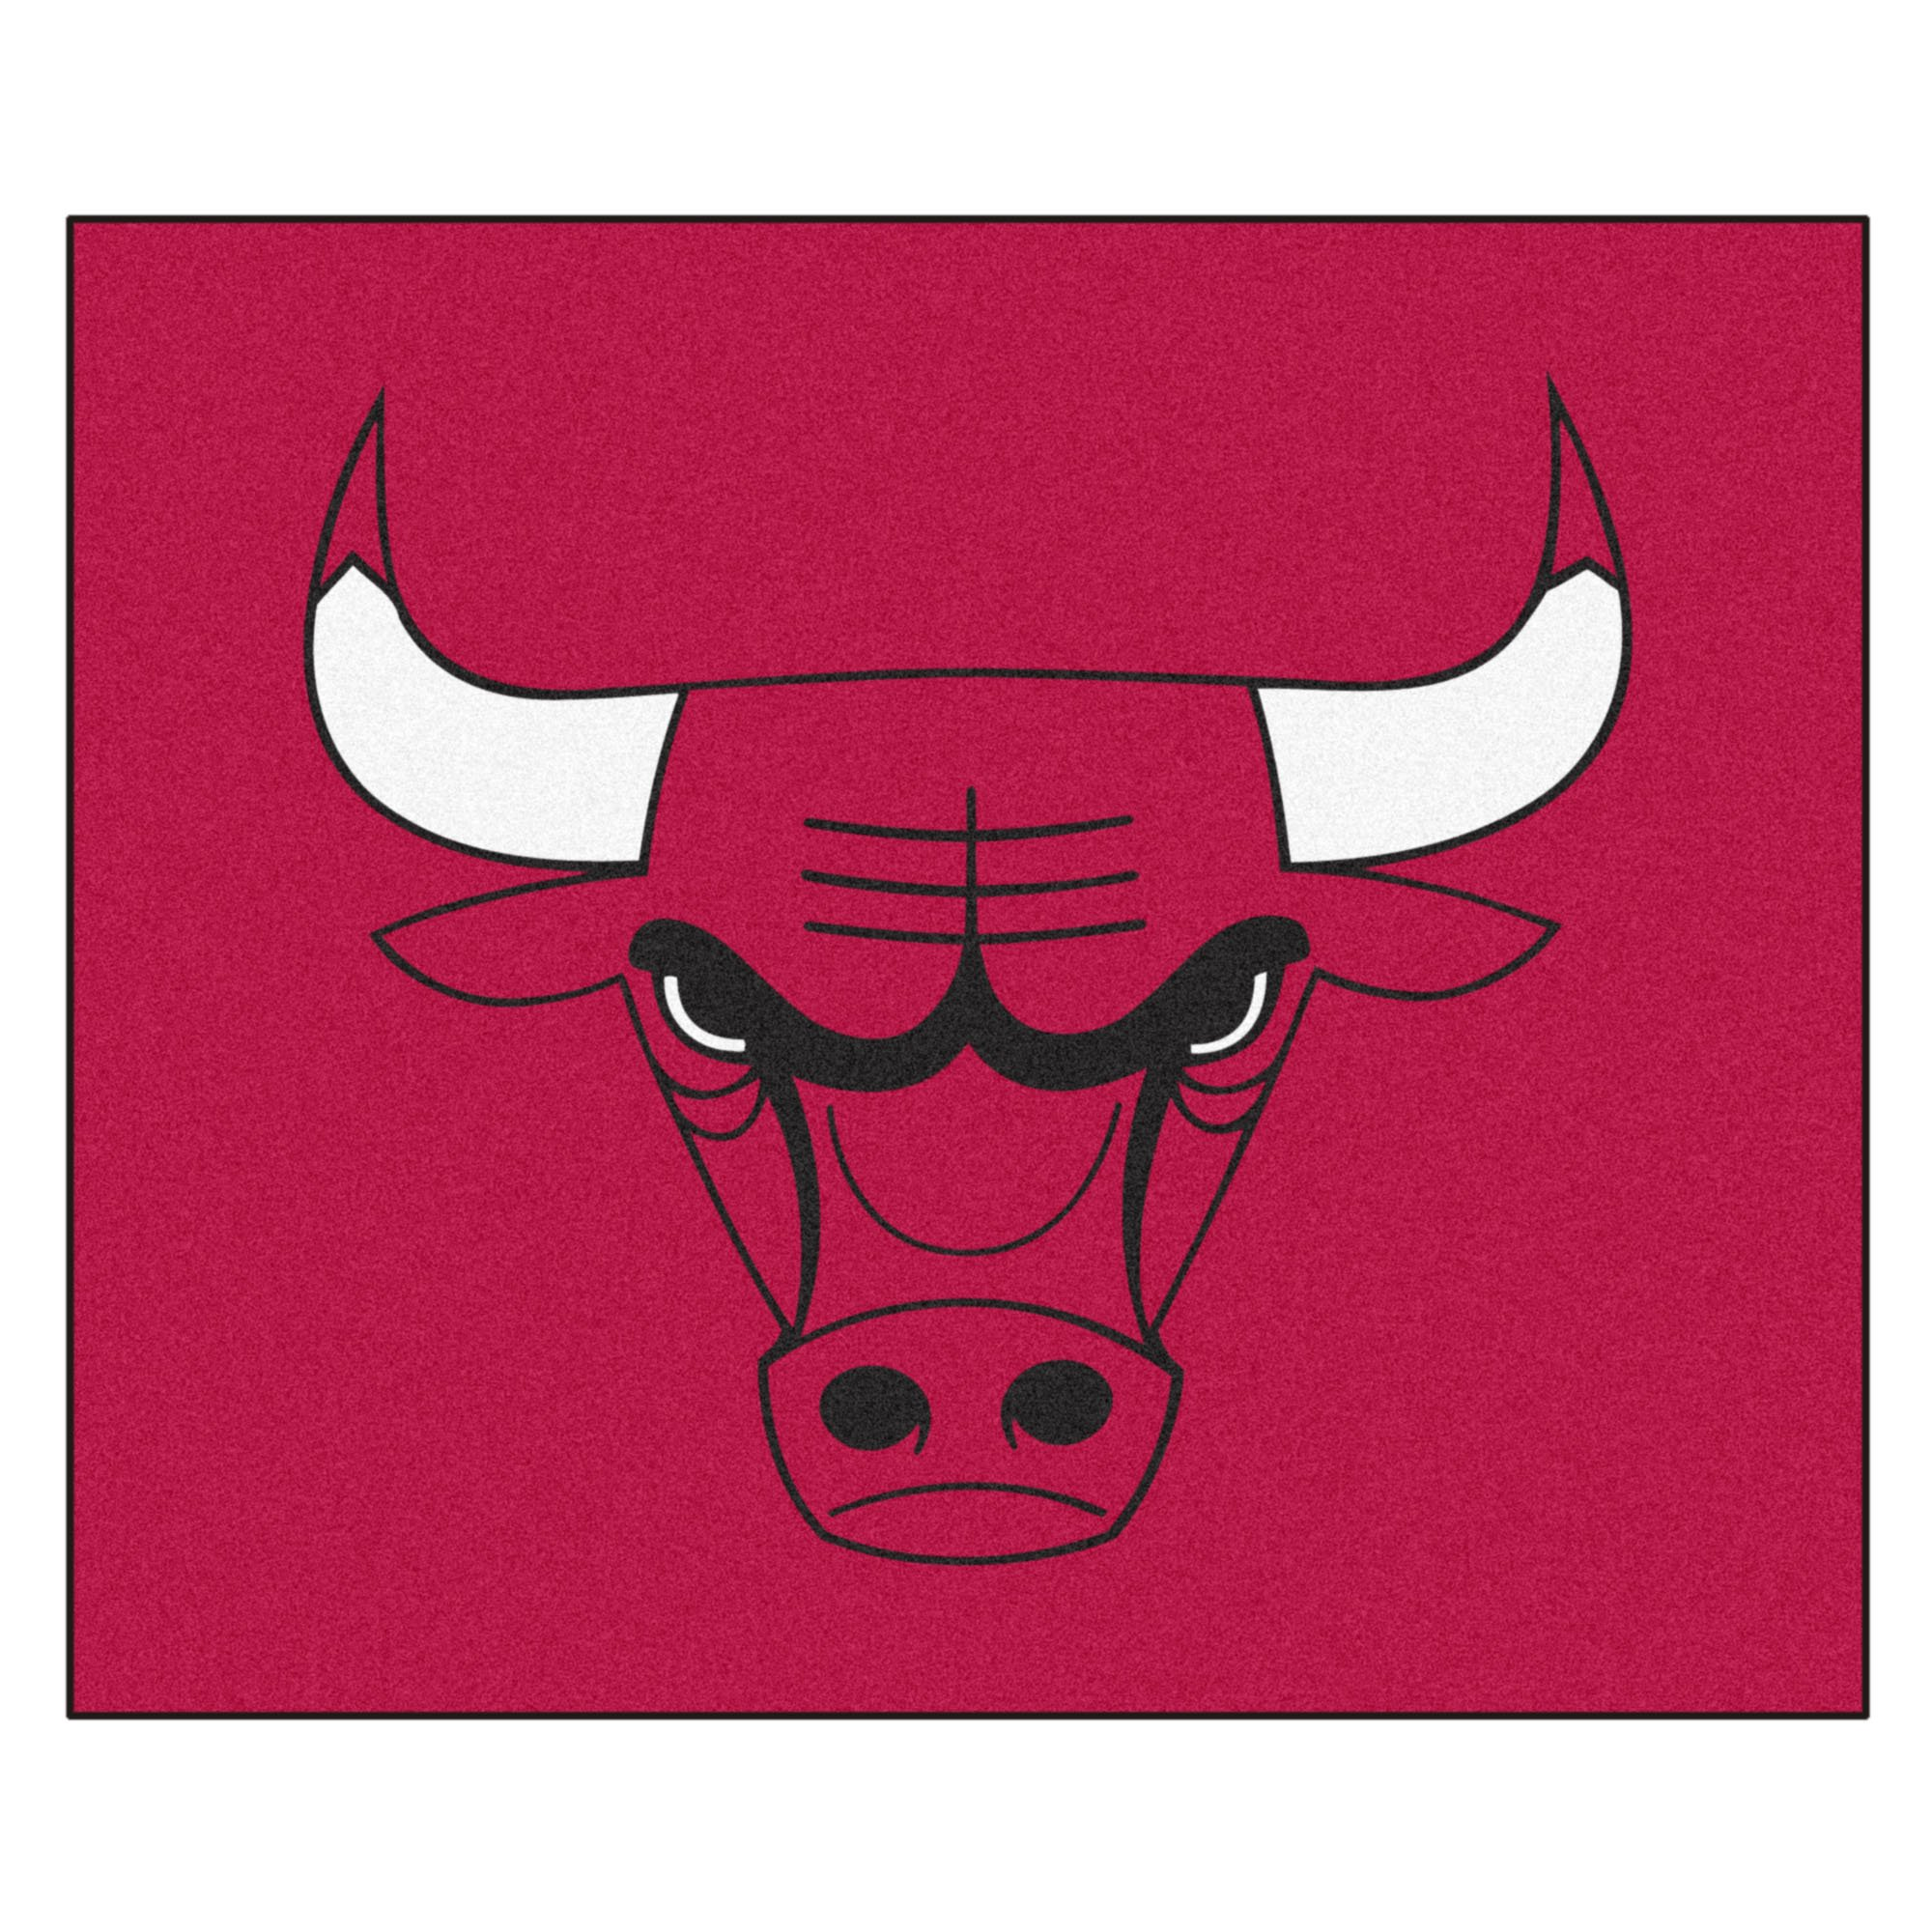 FANMATS 19431 NBA - Chicago Bulls Tailgater Rug , Team Color, 59.5''x71'' by Fanmats